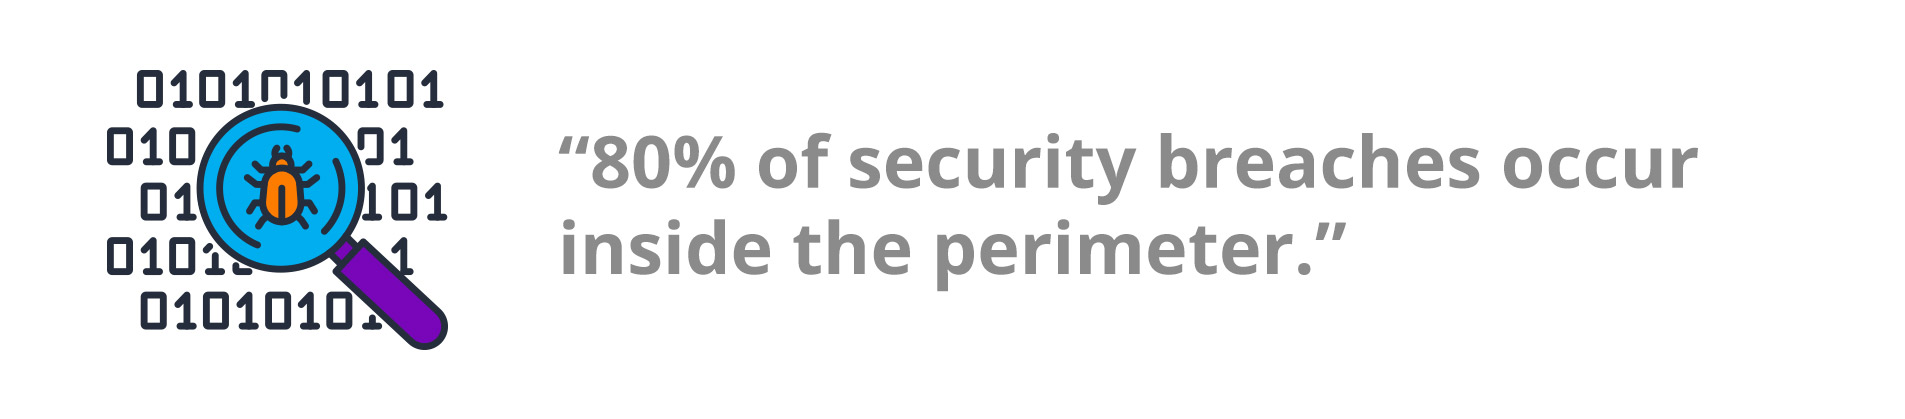 80% of security breaches occur inside the perimeter.